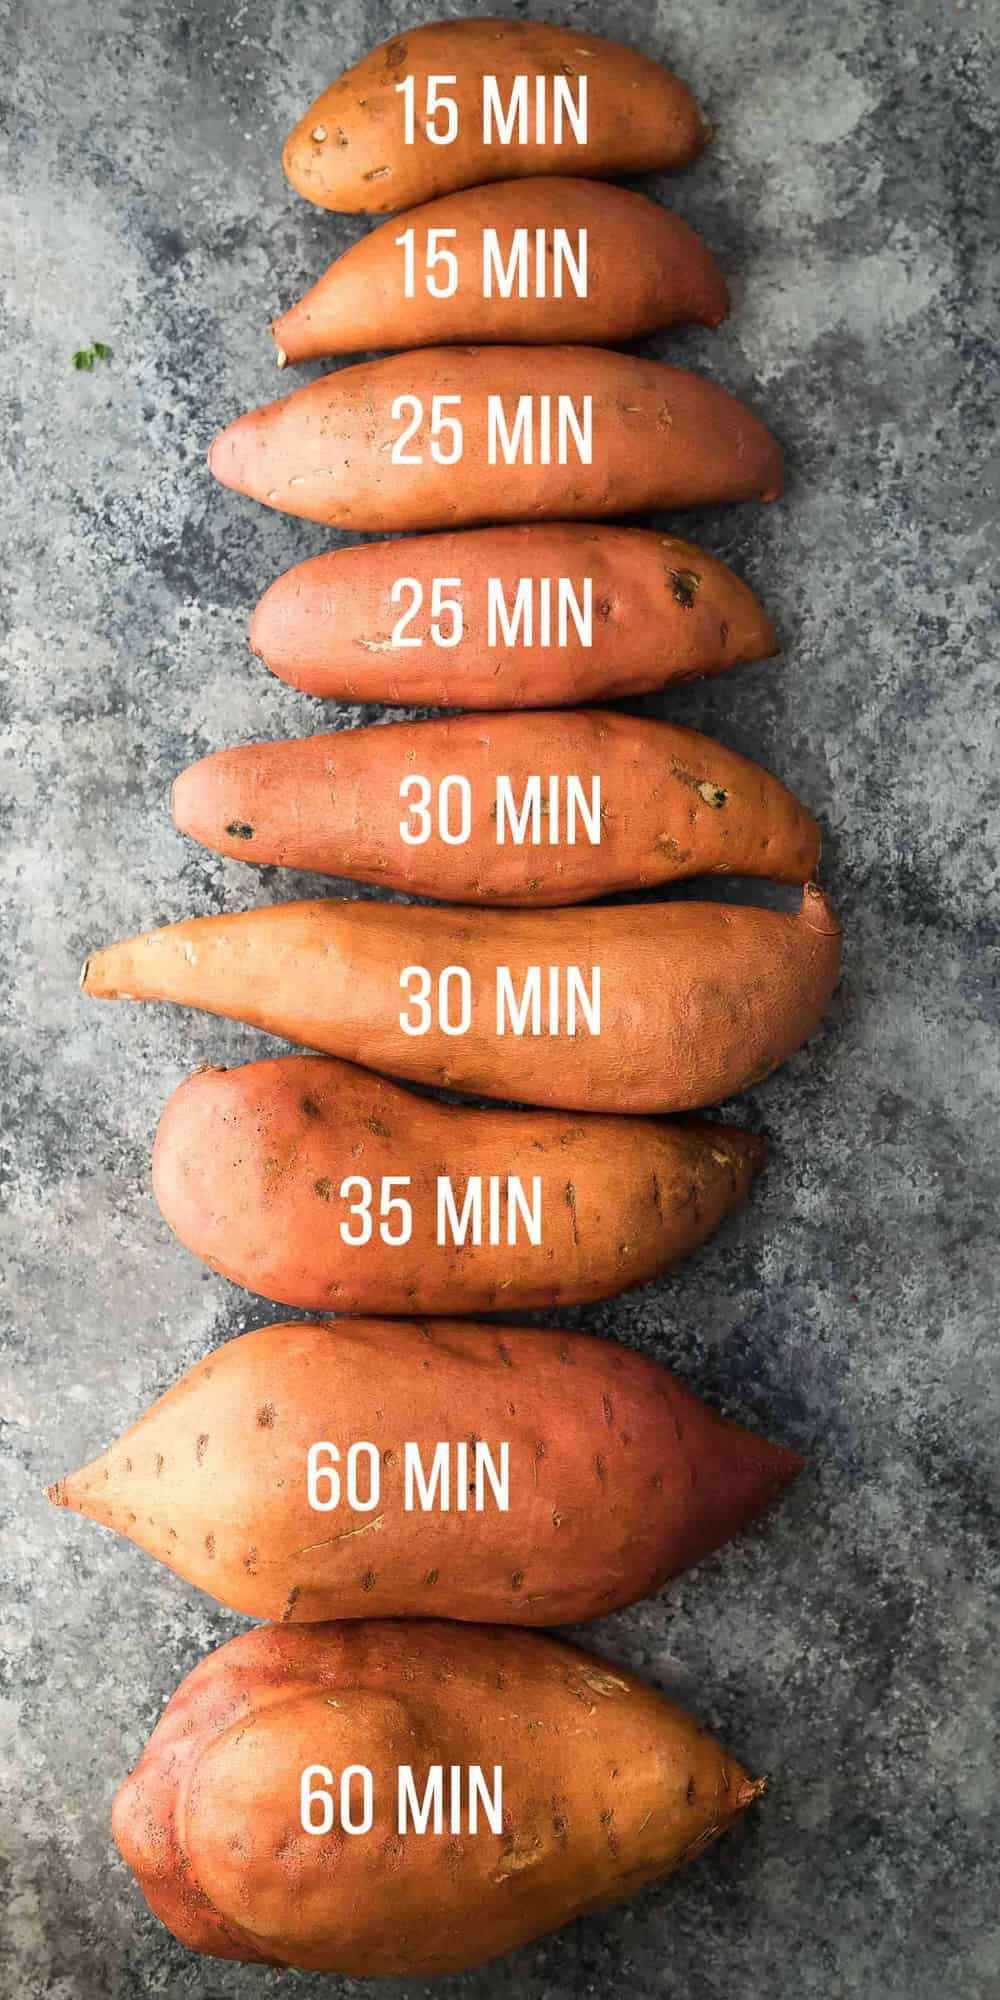 sweet potatoes arranged by size with the Instant Pot cook times indicated on each